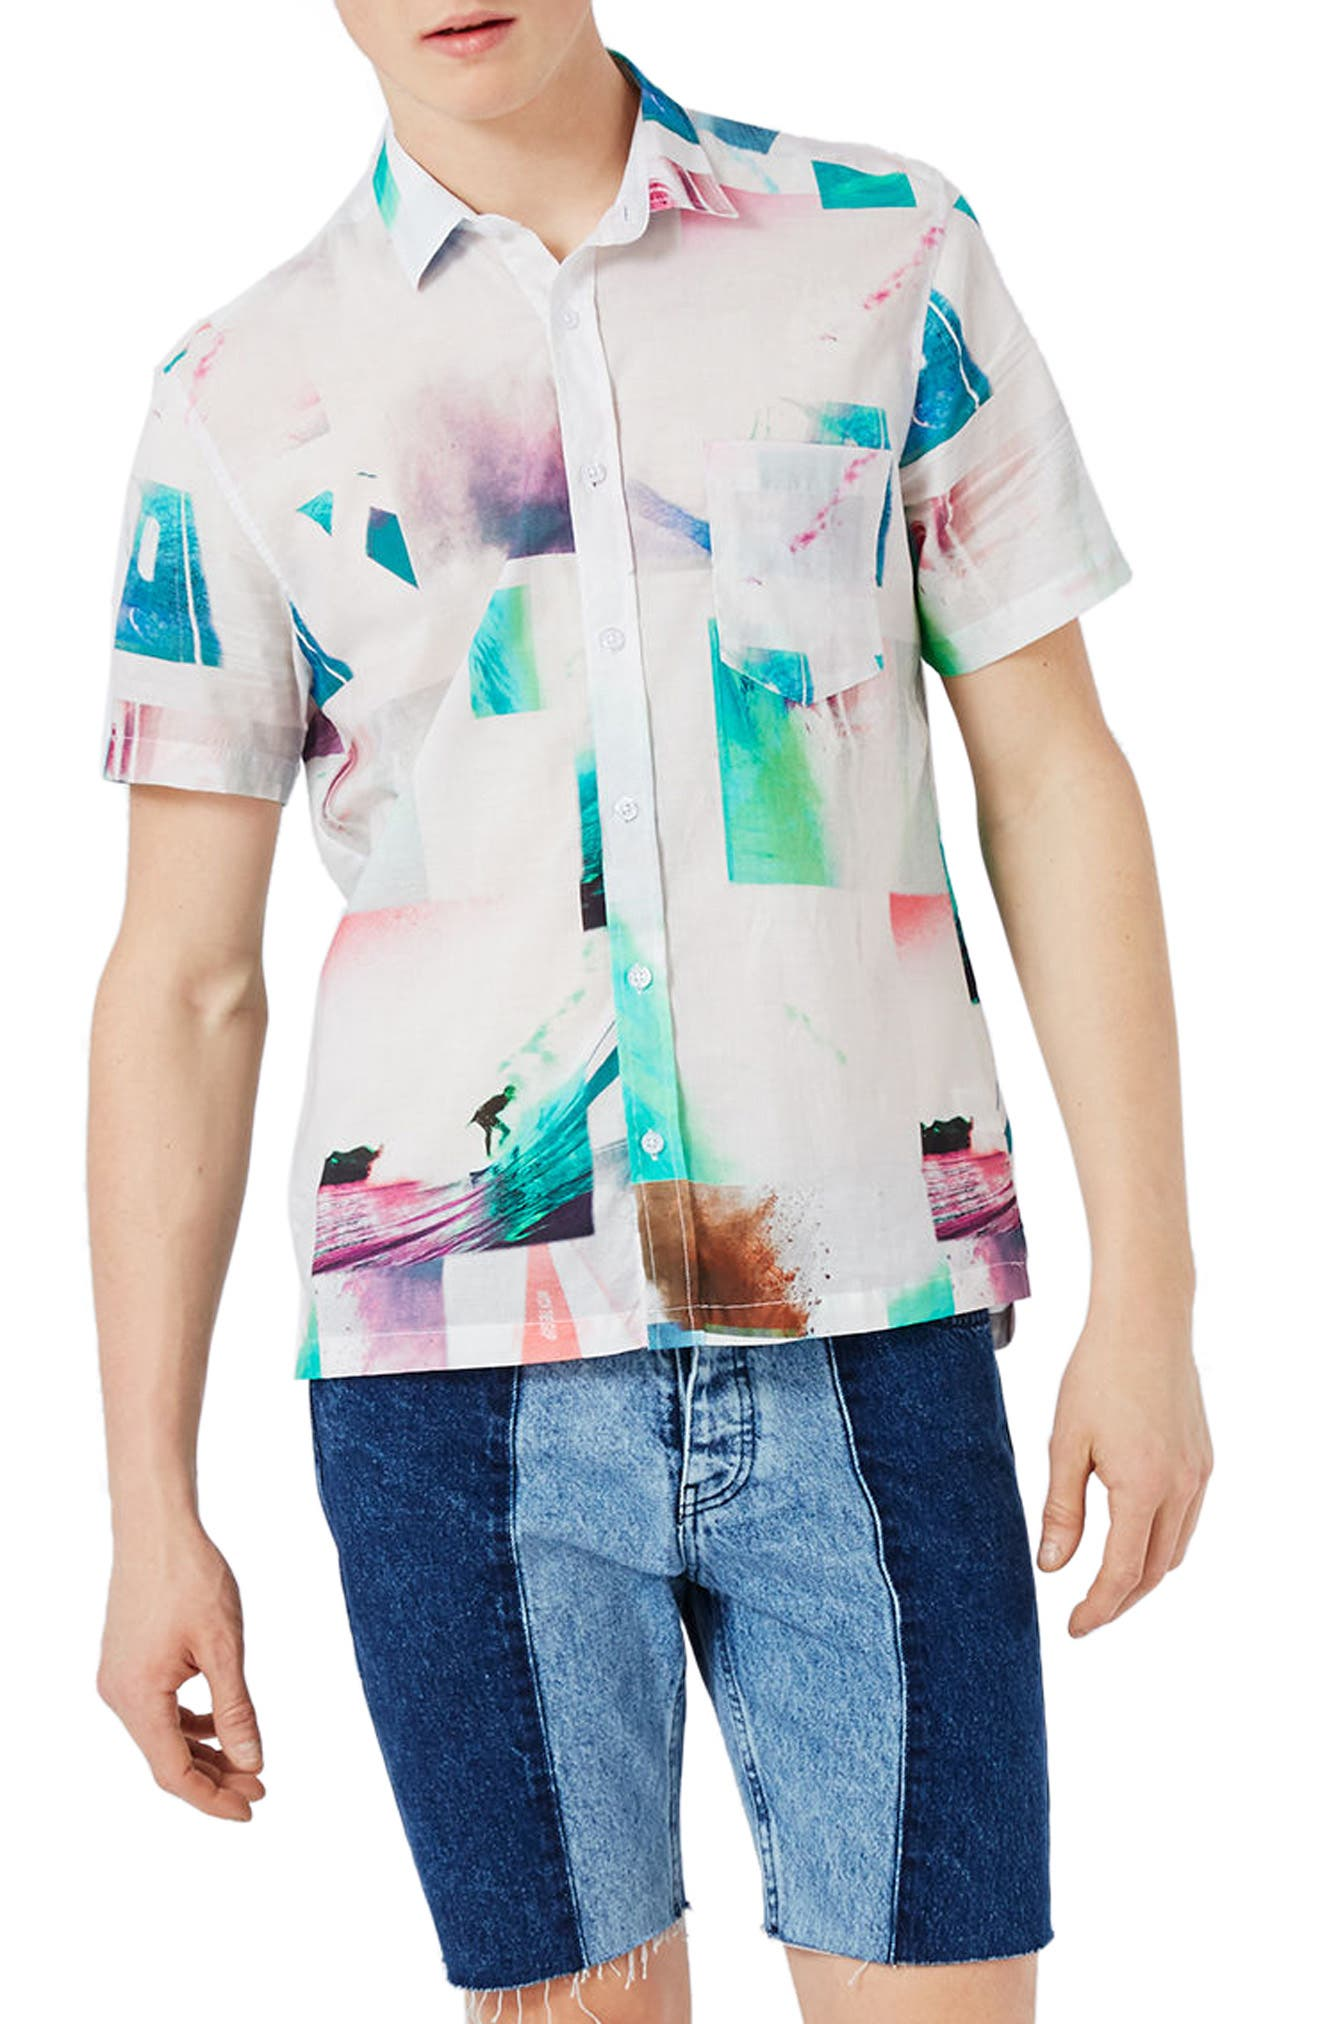 TOPMAN Photo Print Shirt